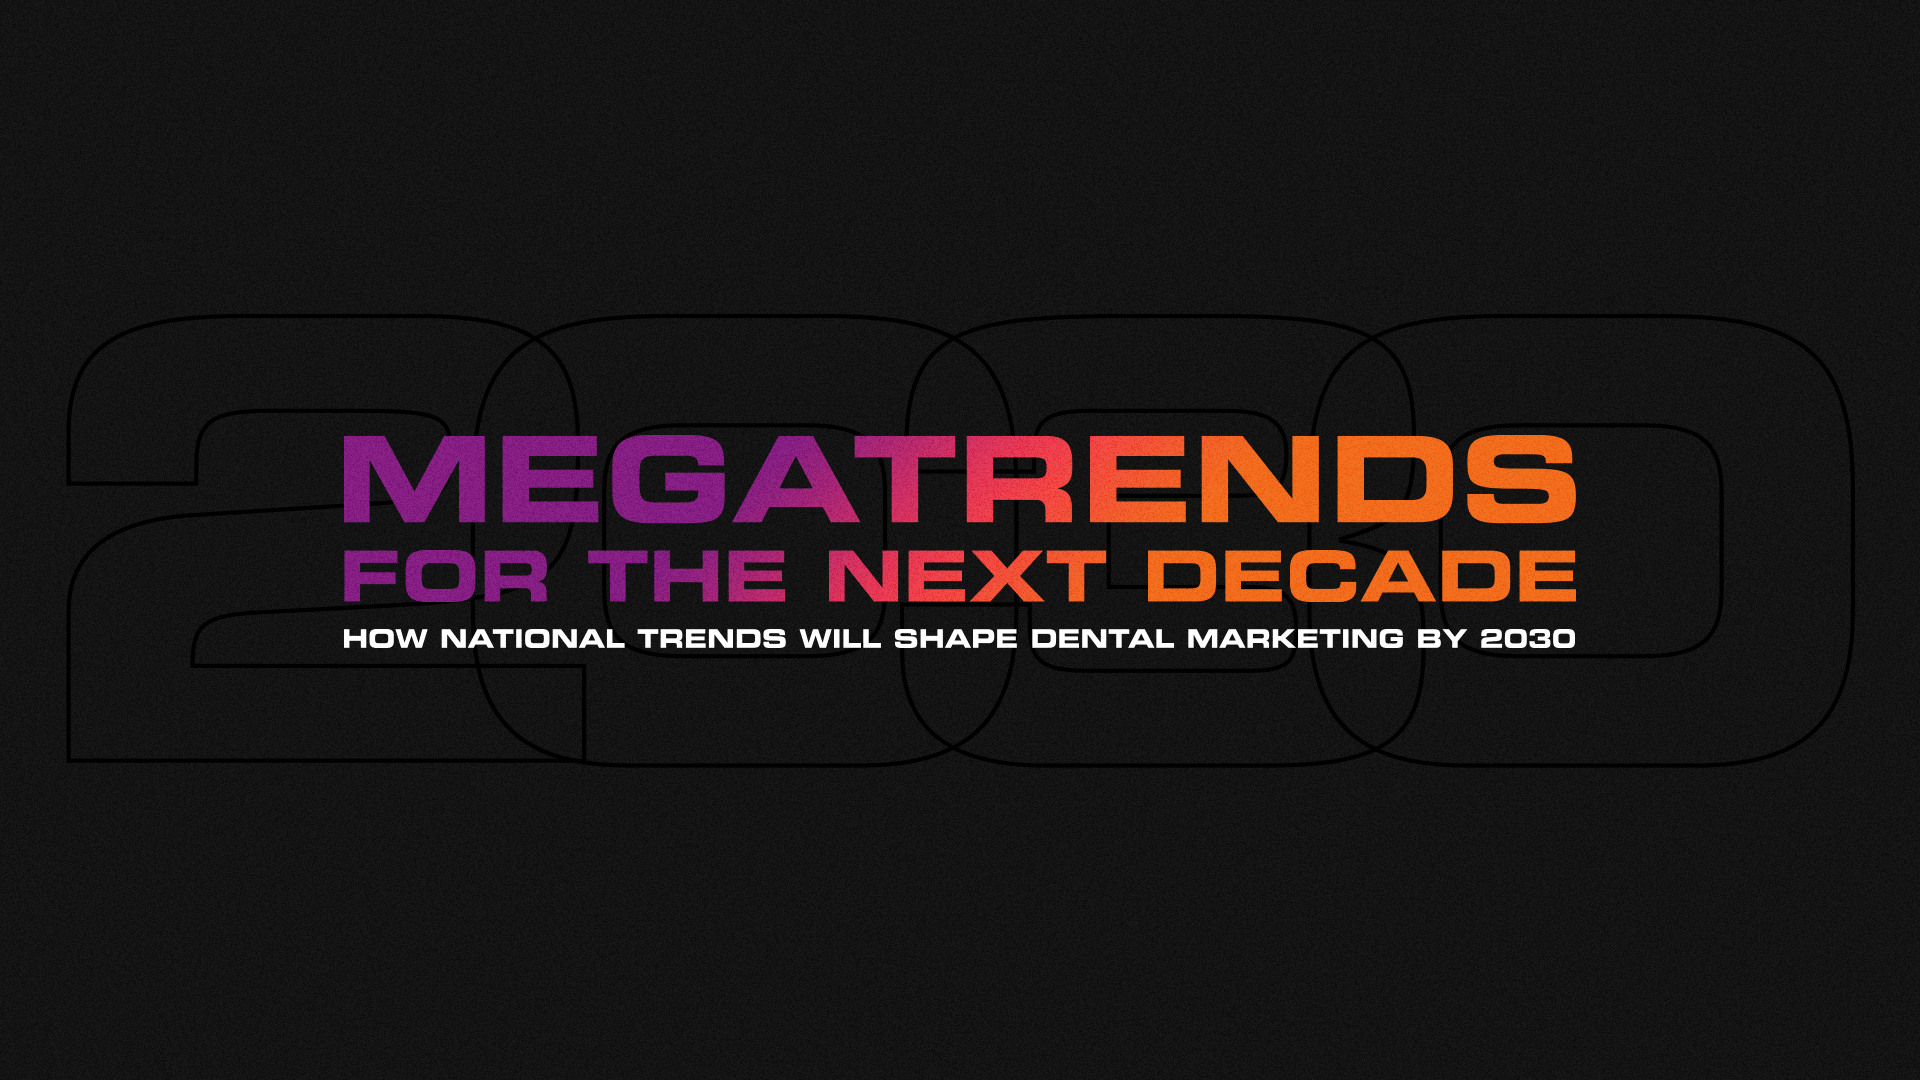 Megatrends for the Next Decade